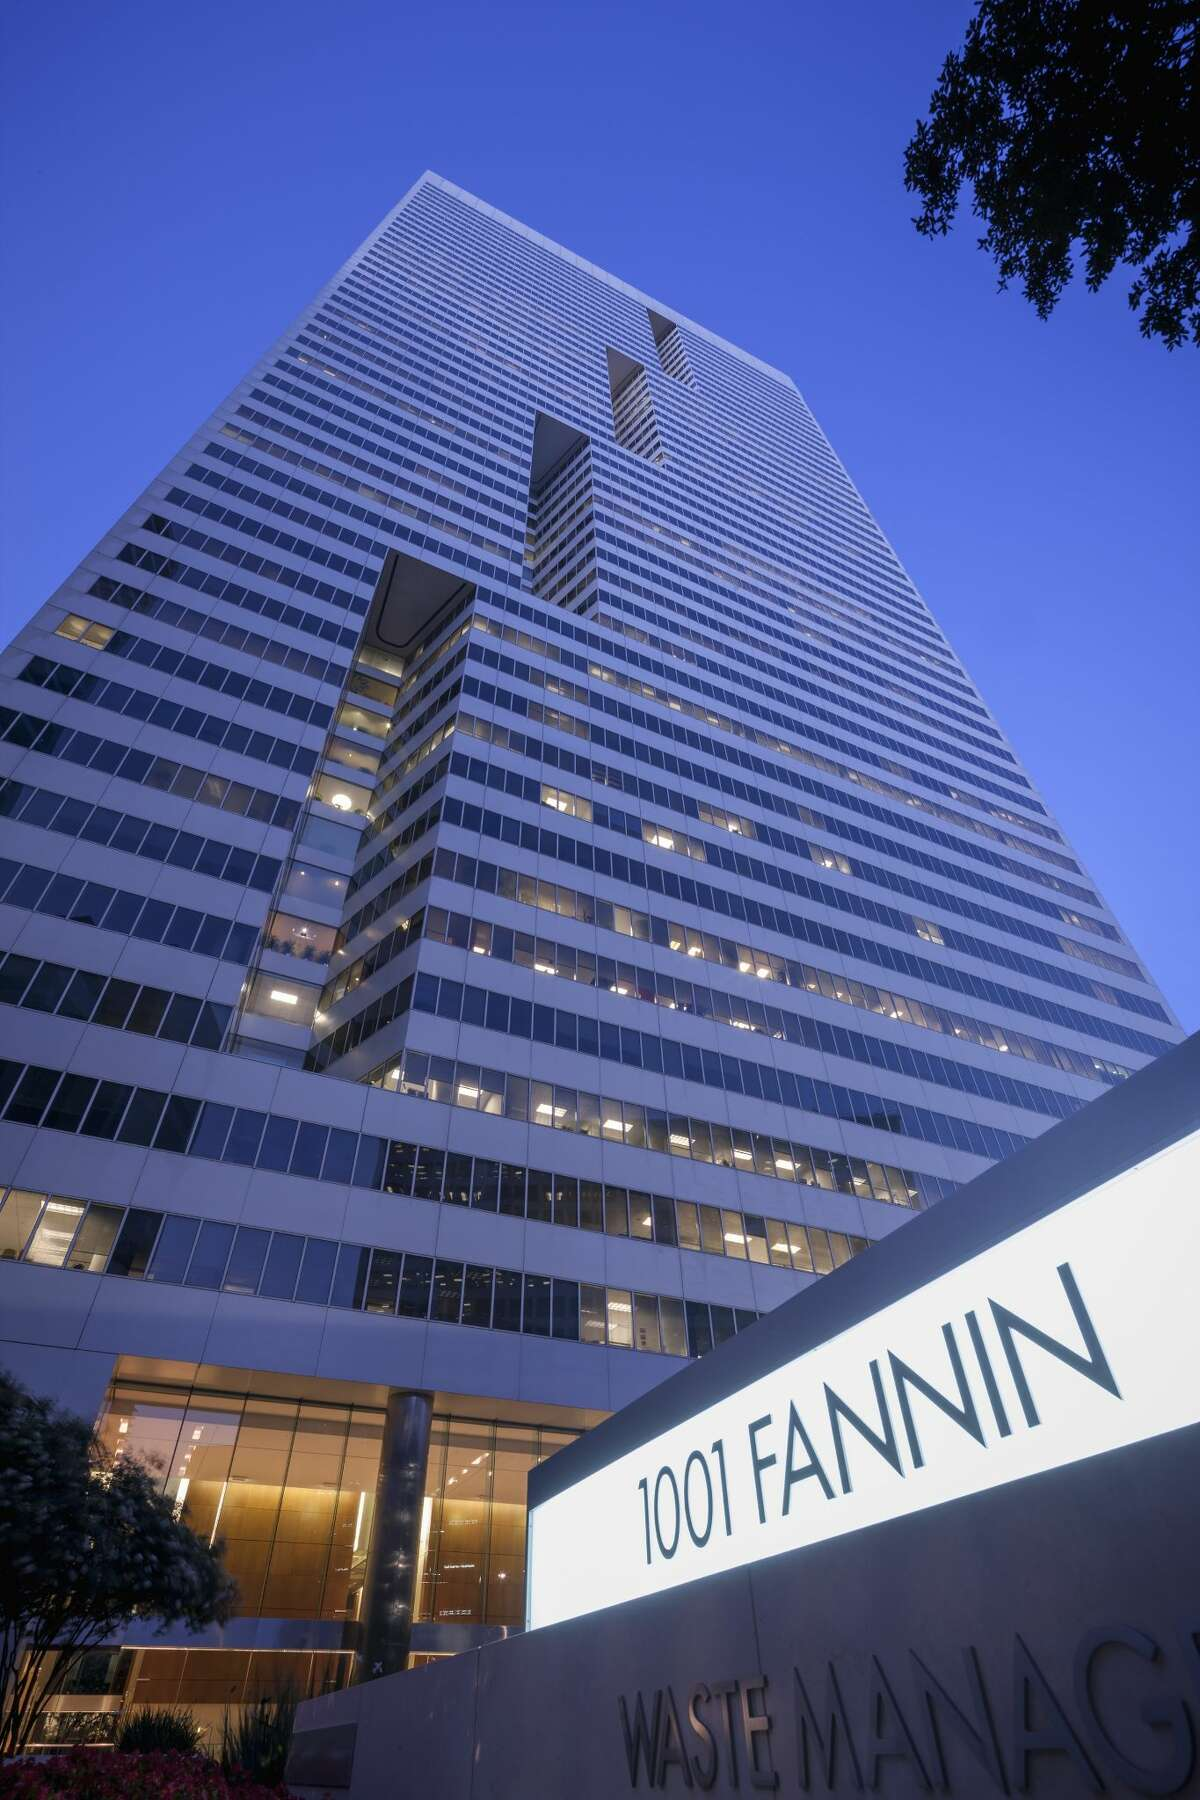 1001 Fannin, a 49-story building in downtown Houston, is undergoing renovations.